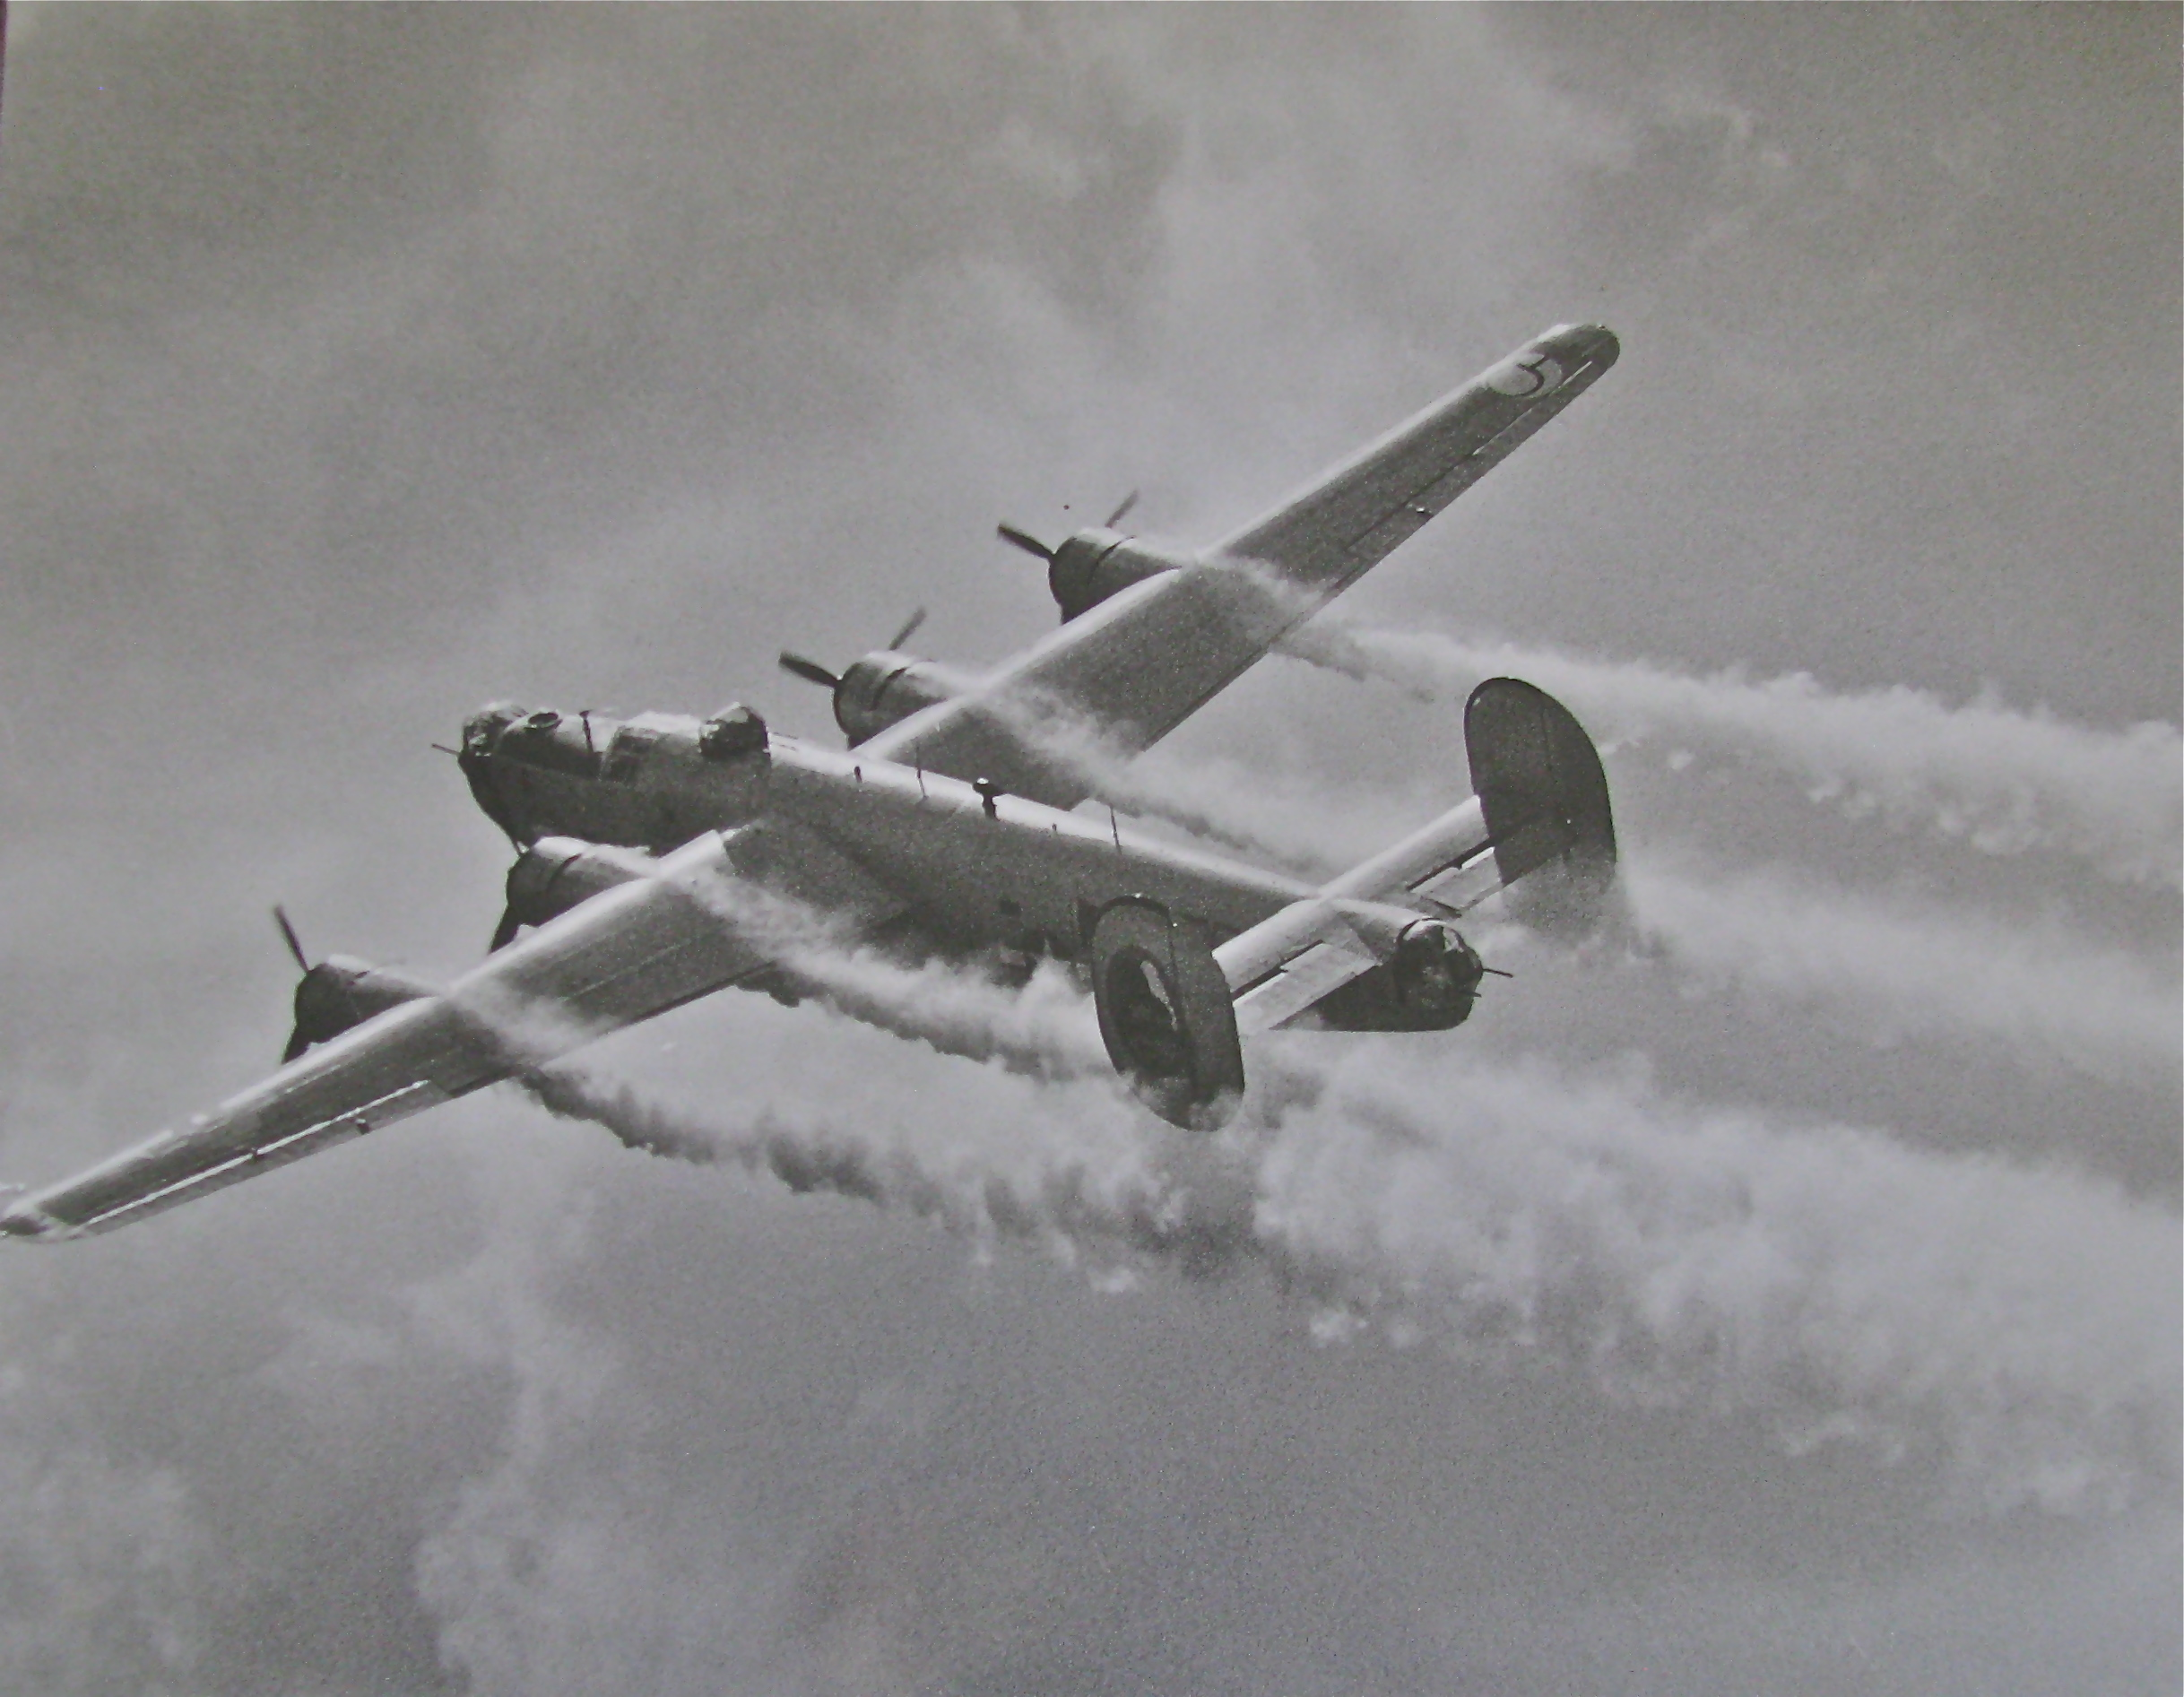 U.S. 8th Air Force saved Britain from Hitler during WW II ...